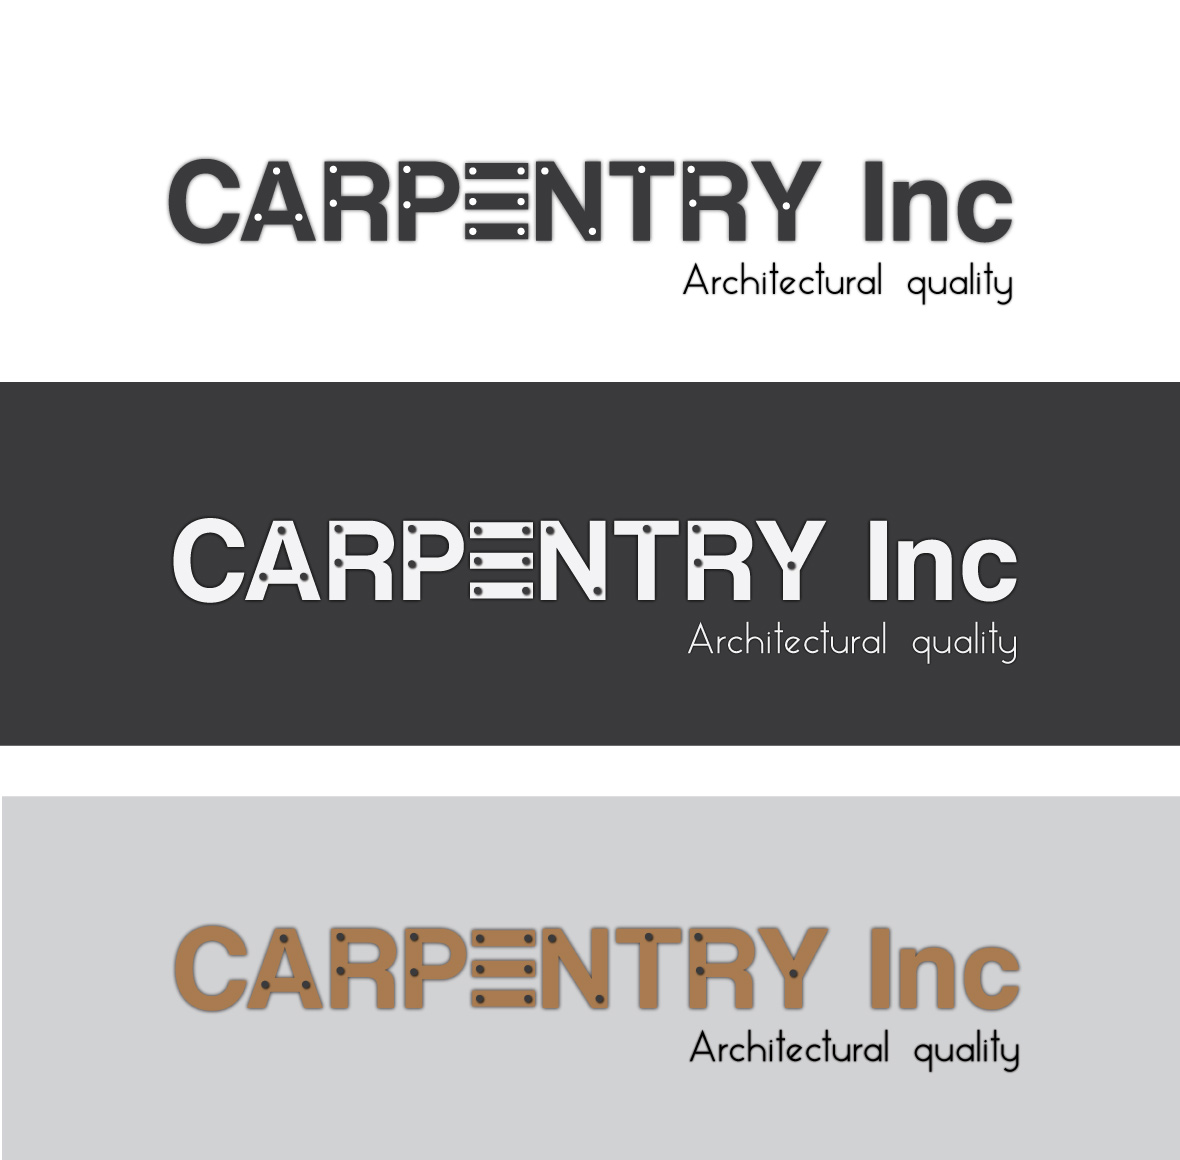 Logo Design by Private User - Entry No. 42 in the Logo Design Contest Creative Logo Design for Carpentry inc..